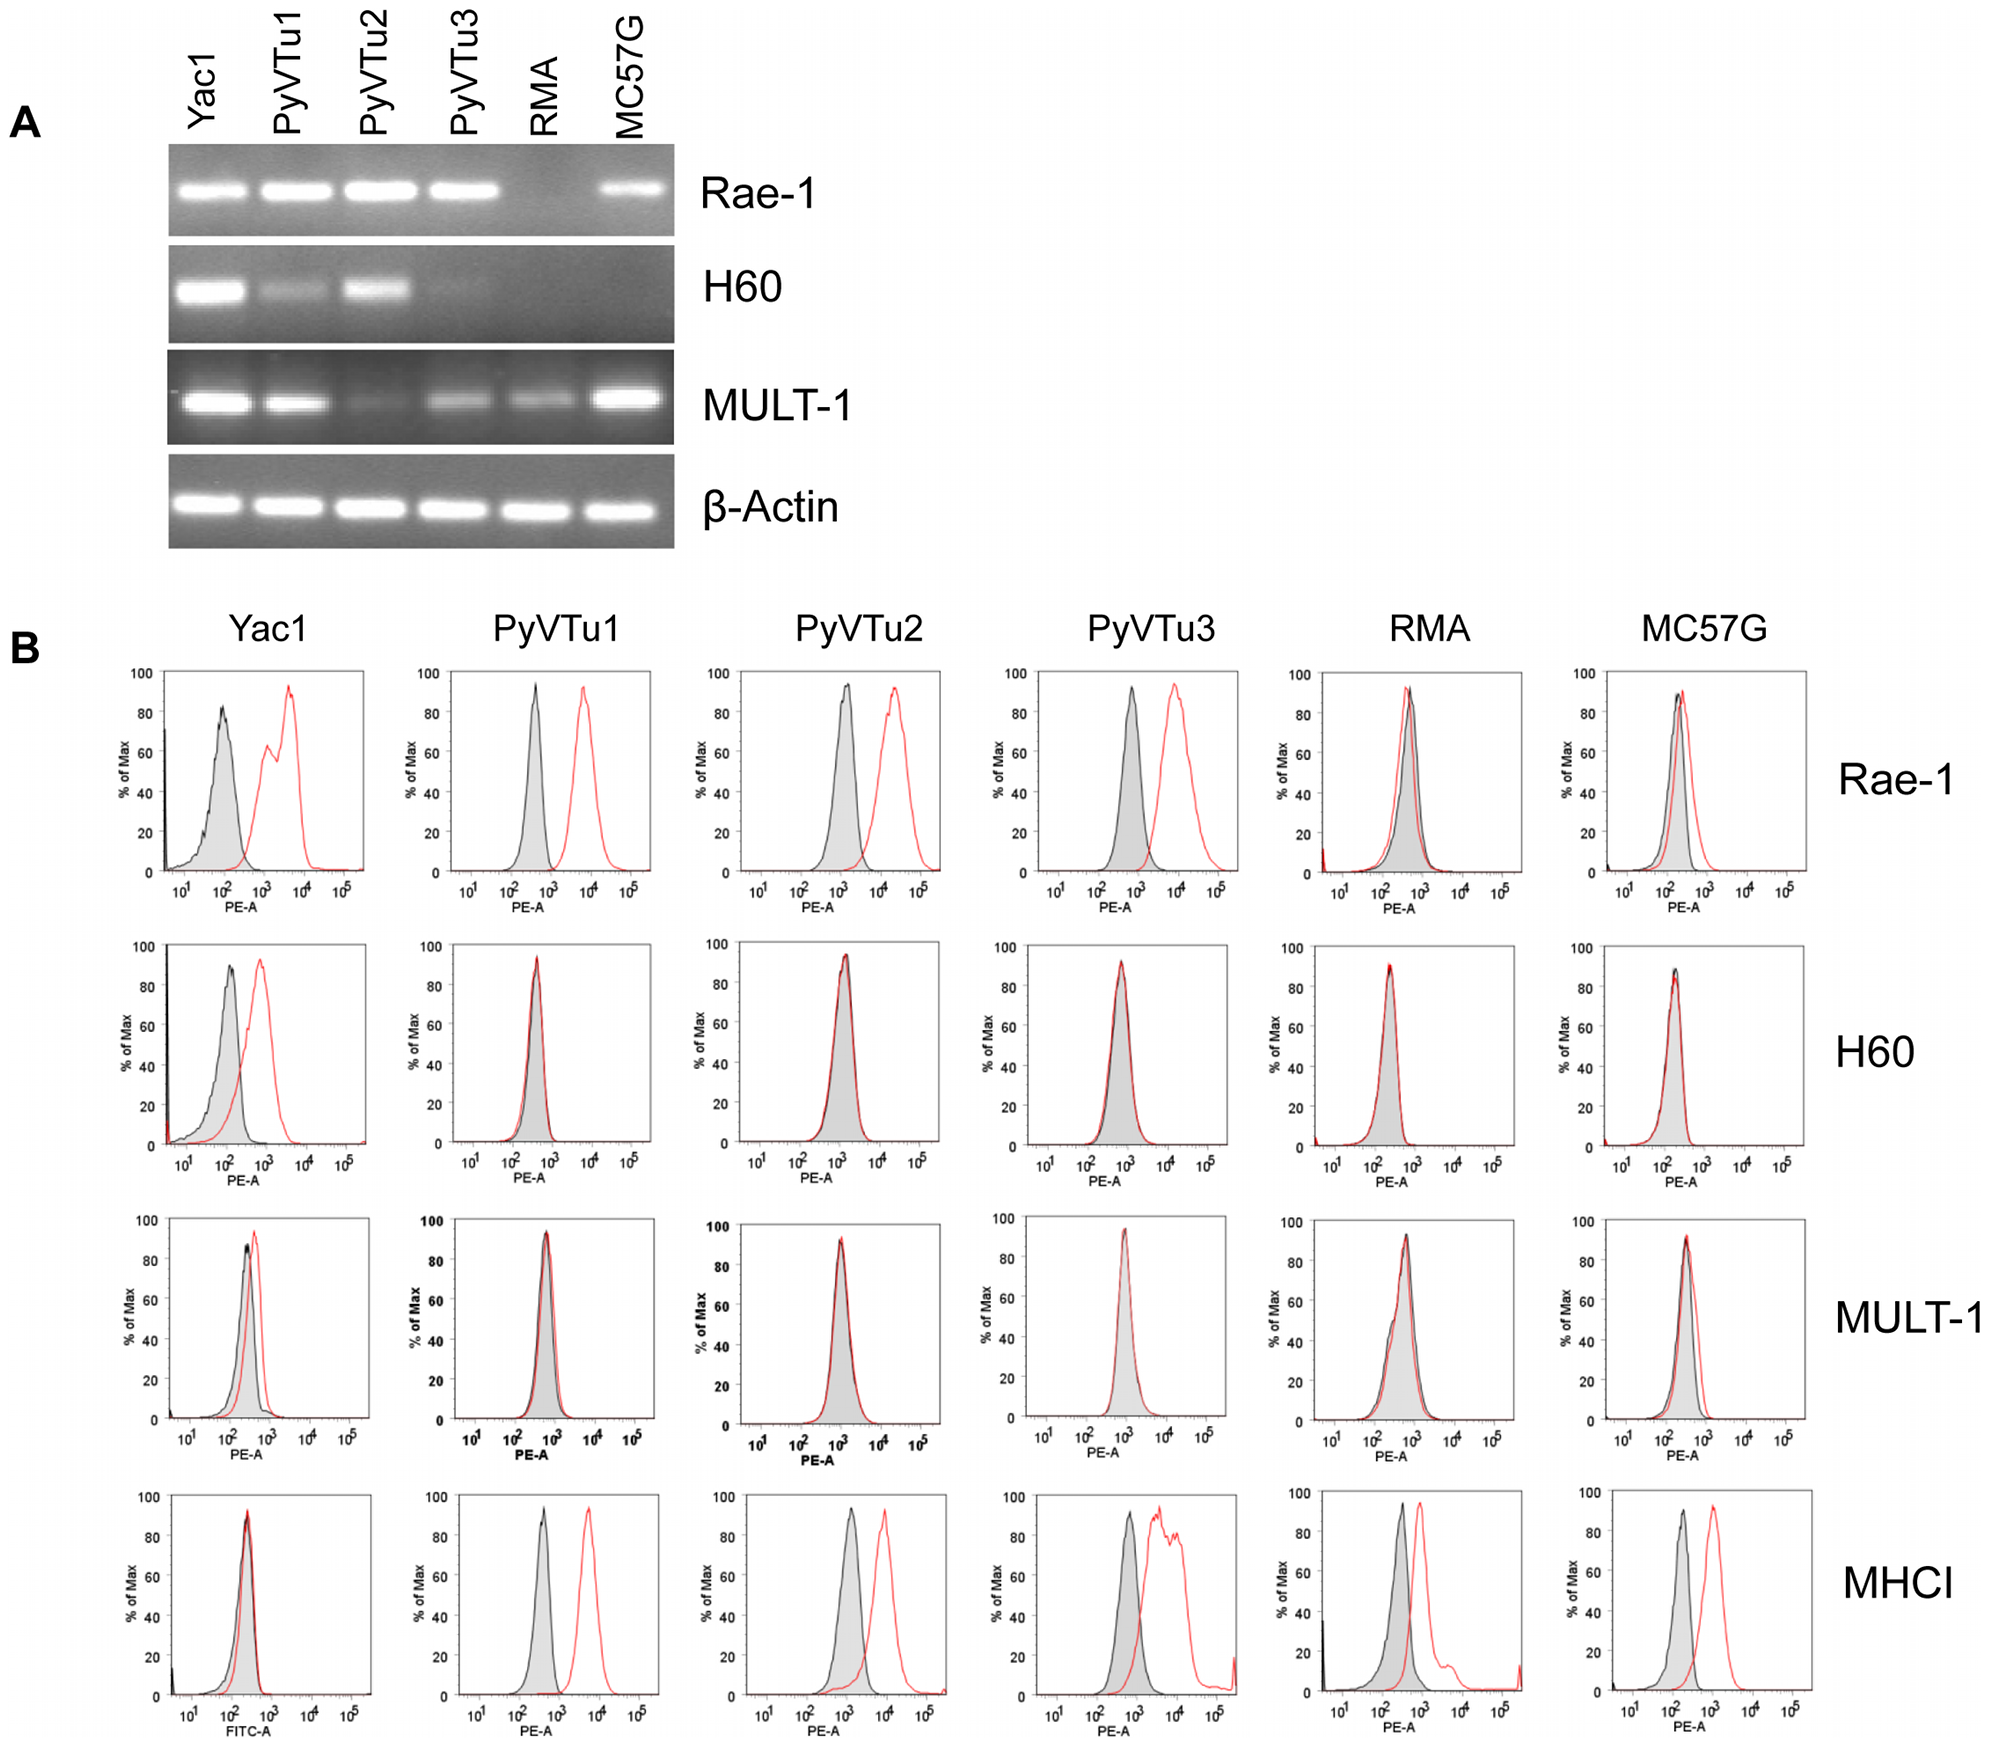 Expression of NKG2D ligands on cell lines established from PyV-induced salivary gland tumors of TCRβ×δ KO mice.